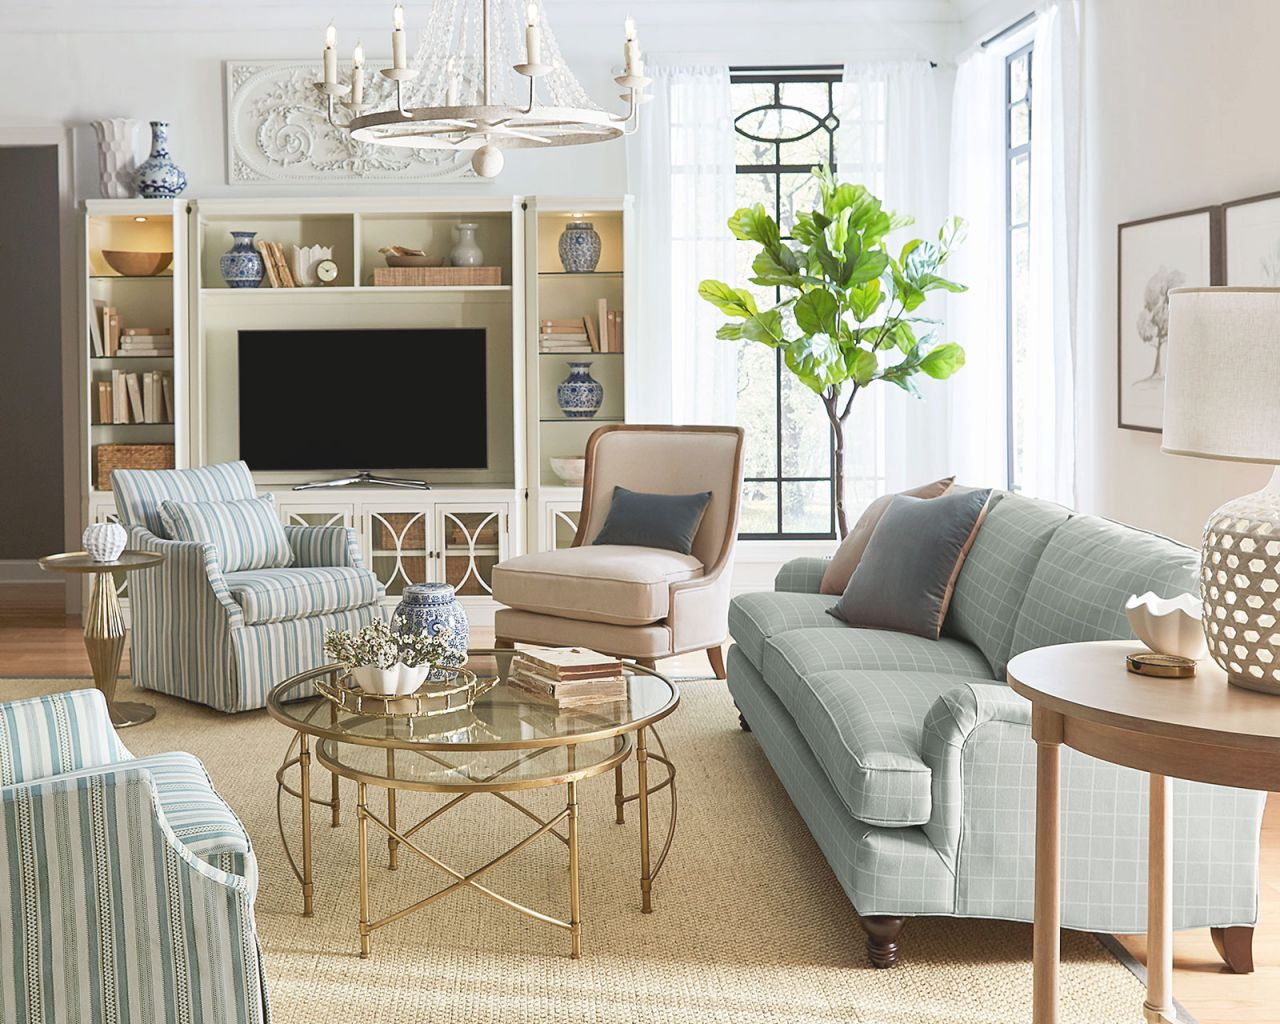 Small Living Room Ideas For More Seating And Style throughout Ideas Of Decorating Small Living Room